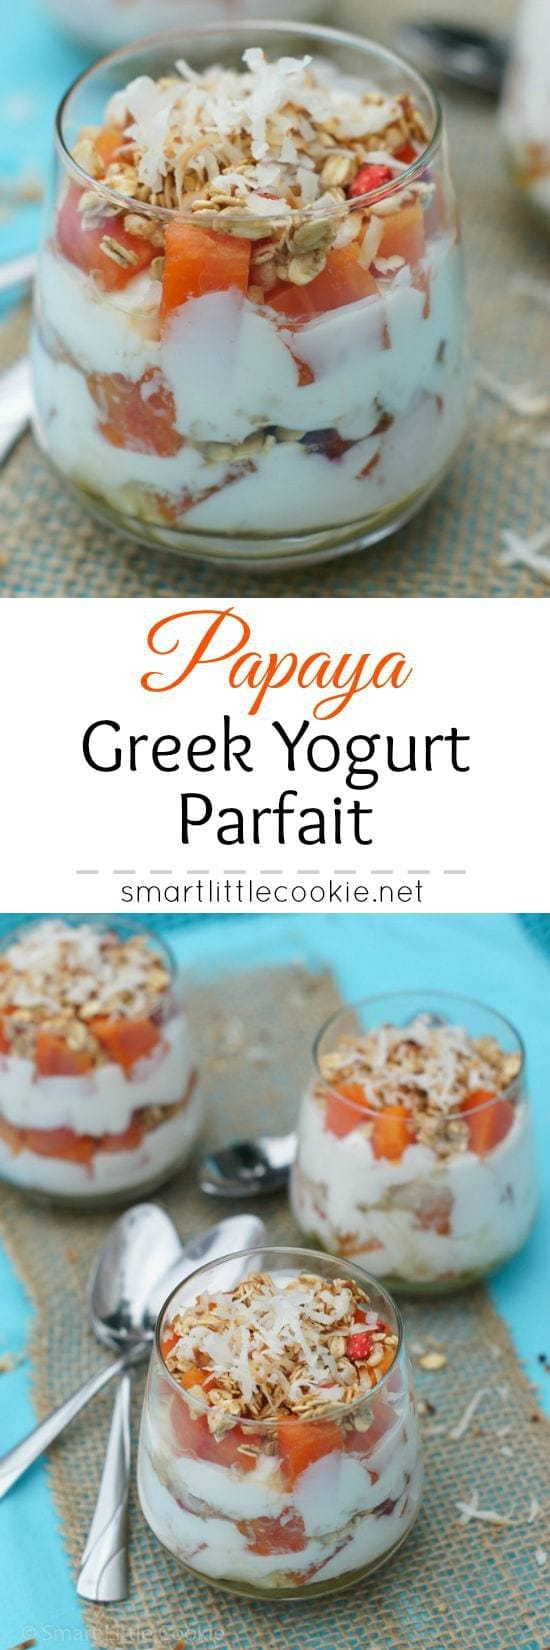 Papaya Greek Yogurt Parfait | smartlittlecookie.net